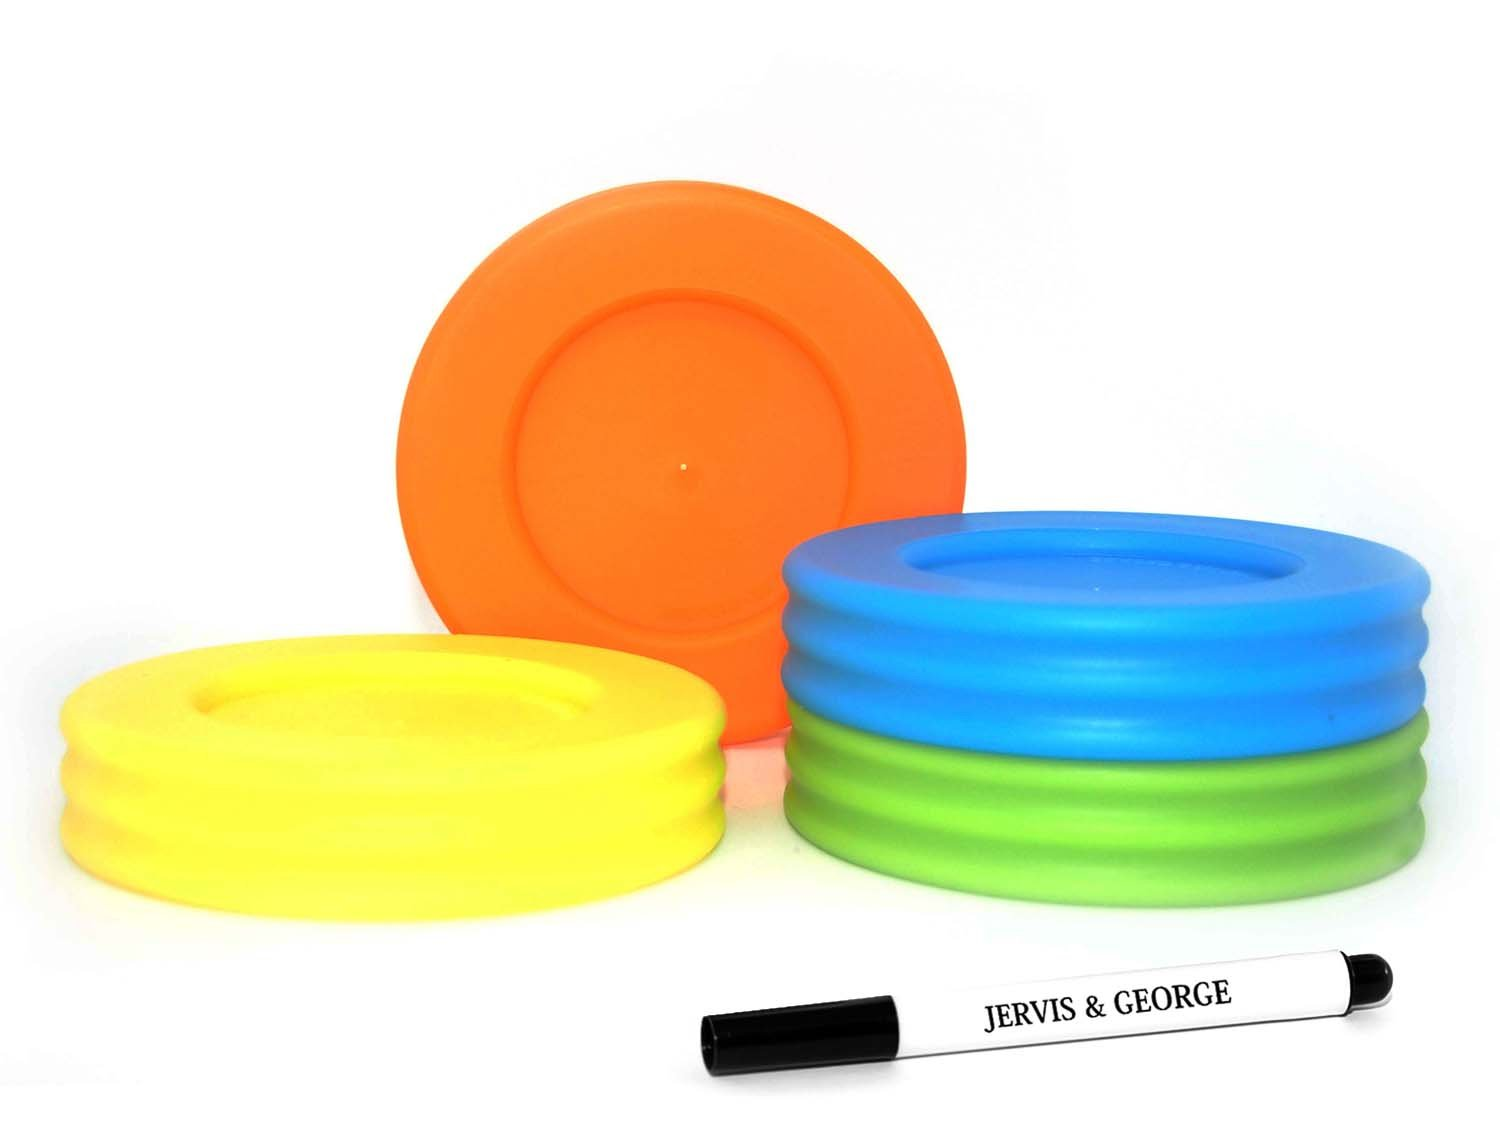 Wide Mouth Mason Jar Lids - Compatible with Wide Mouthed Size Ball Jars - Reusable and Leak Proof Plastic Lids are BPA Free - Includes Pen for Marking - Green & Orange - Pack of 2